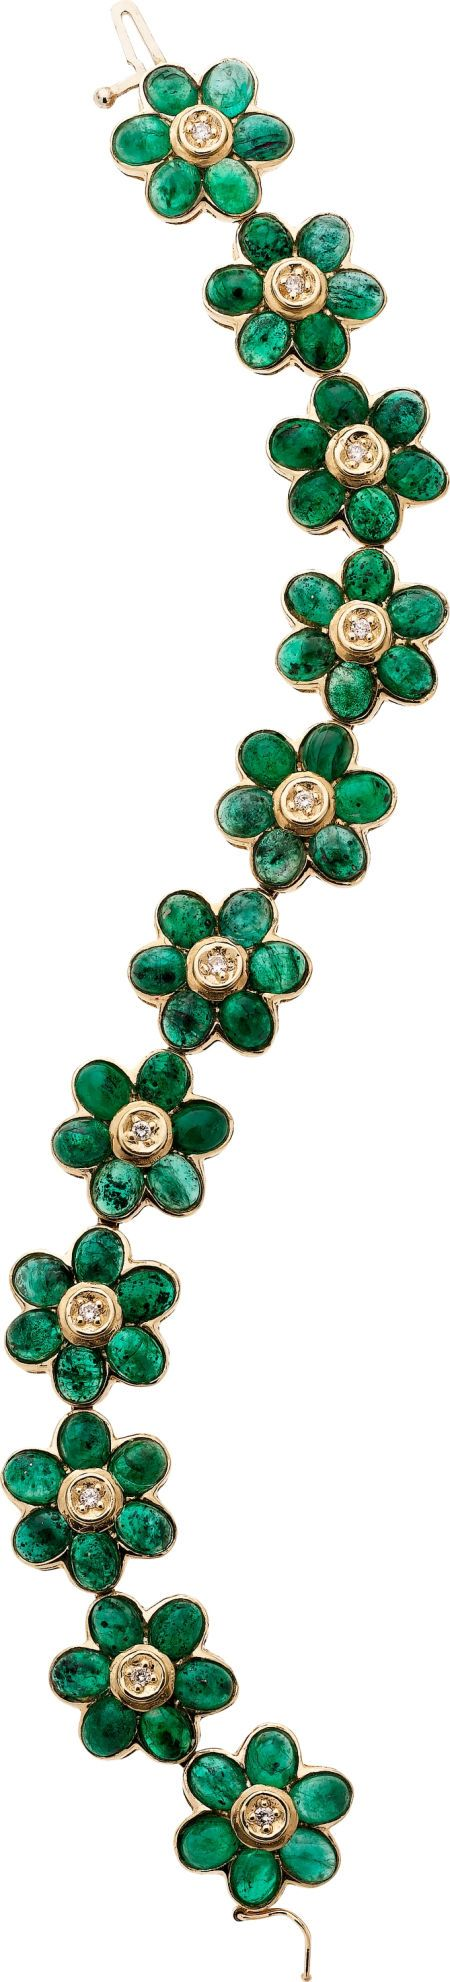 Emerald, Diamond, Gold Bracelet The bracelet features oval-shaped emeralds weighing a total of approximately 24.00 carats, enhanced by full-cut diamonds weighing a total of approximately 0.20 carat, set in a 14k gold flower motif. Gross weight 31.30 grams. Dimensions: 7 inches x 9/16 inch.